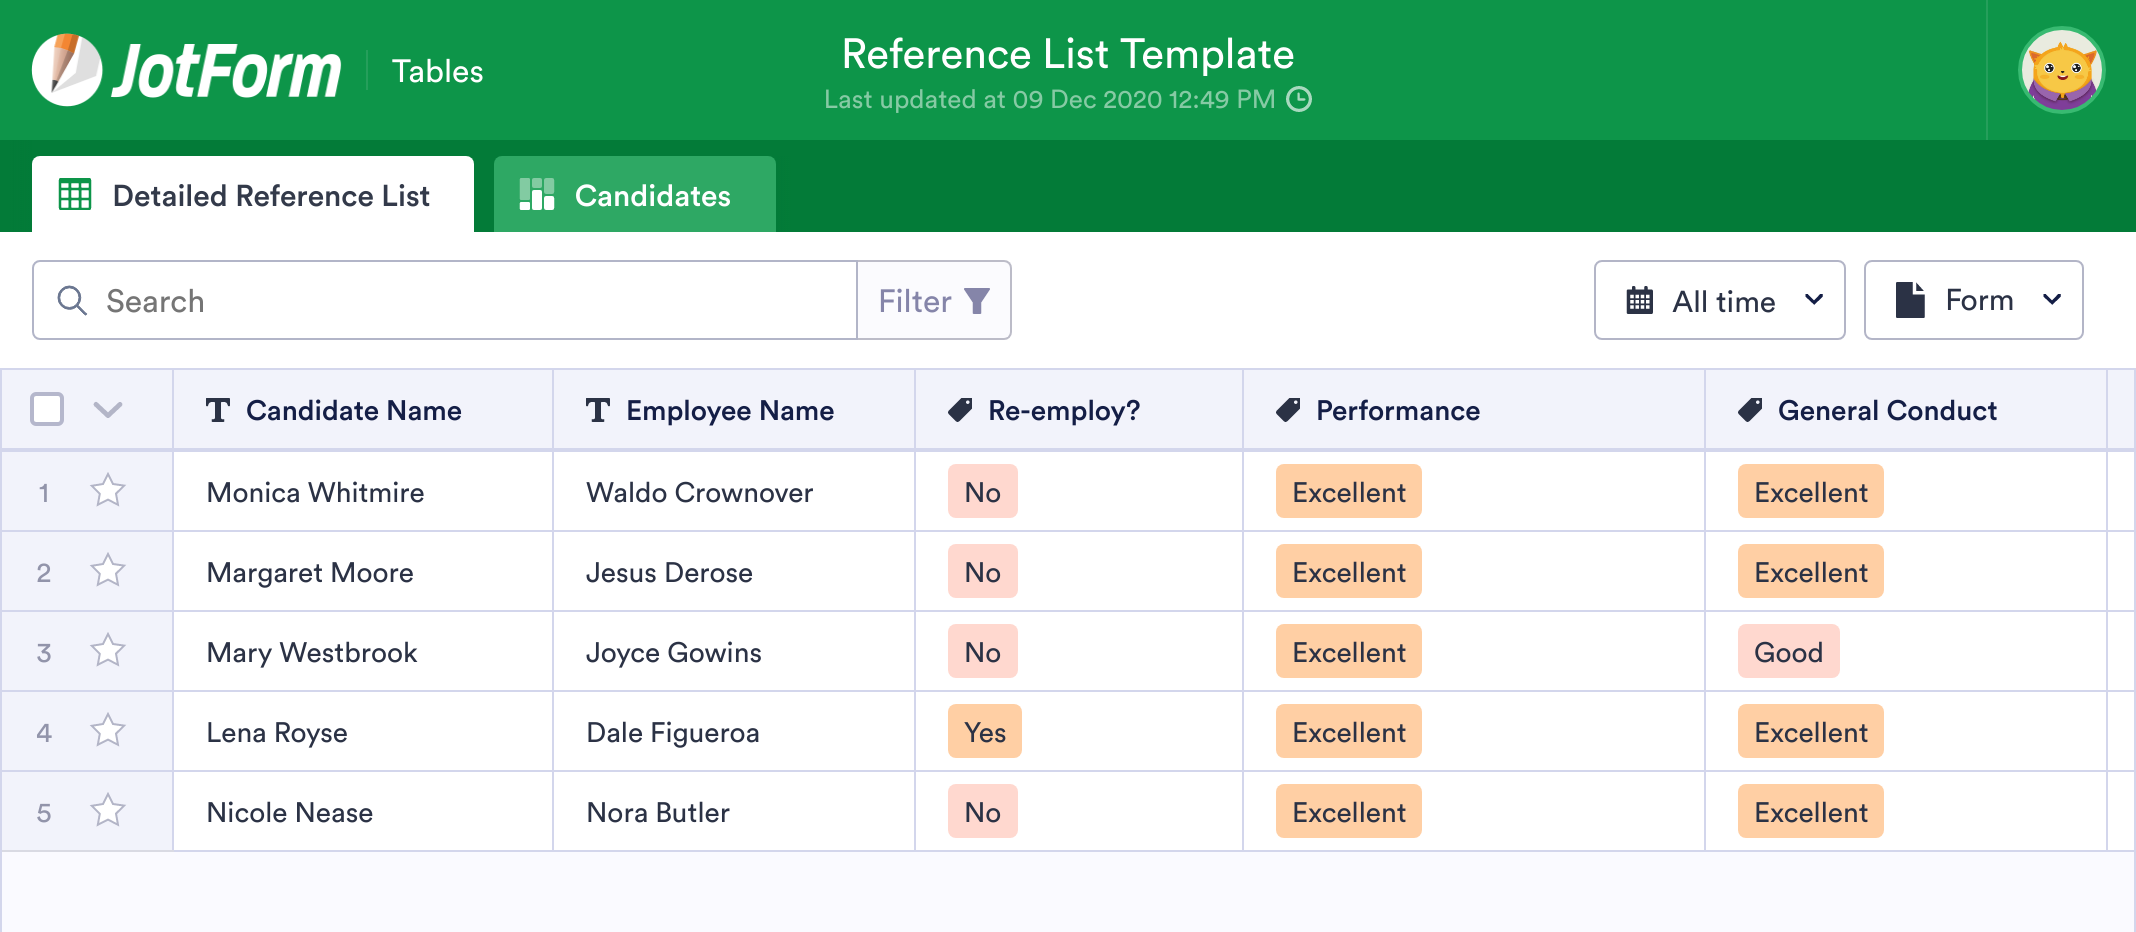 Reference List Template